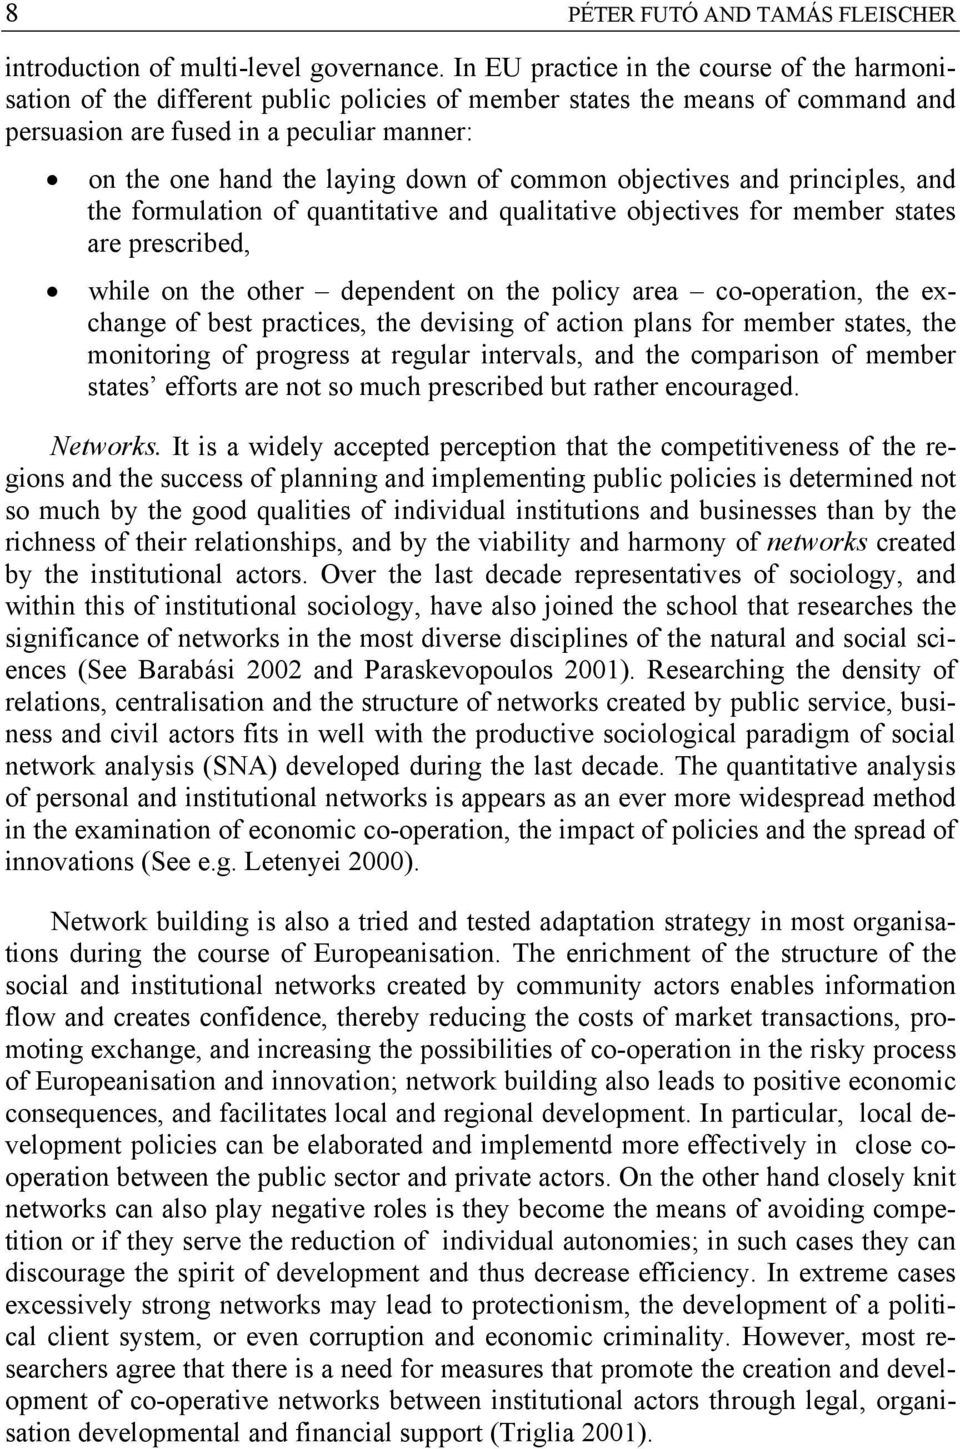 of common objectives and principles, and the formulation of quantitative and qualitative objectives for member states are prescribed, while on the other dependent on the policy area co-operation, the